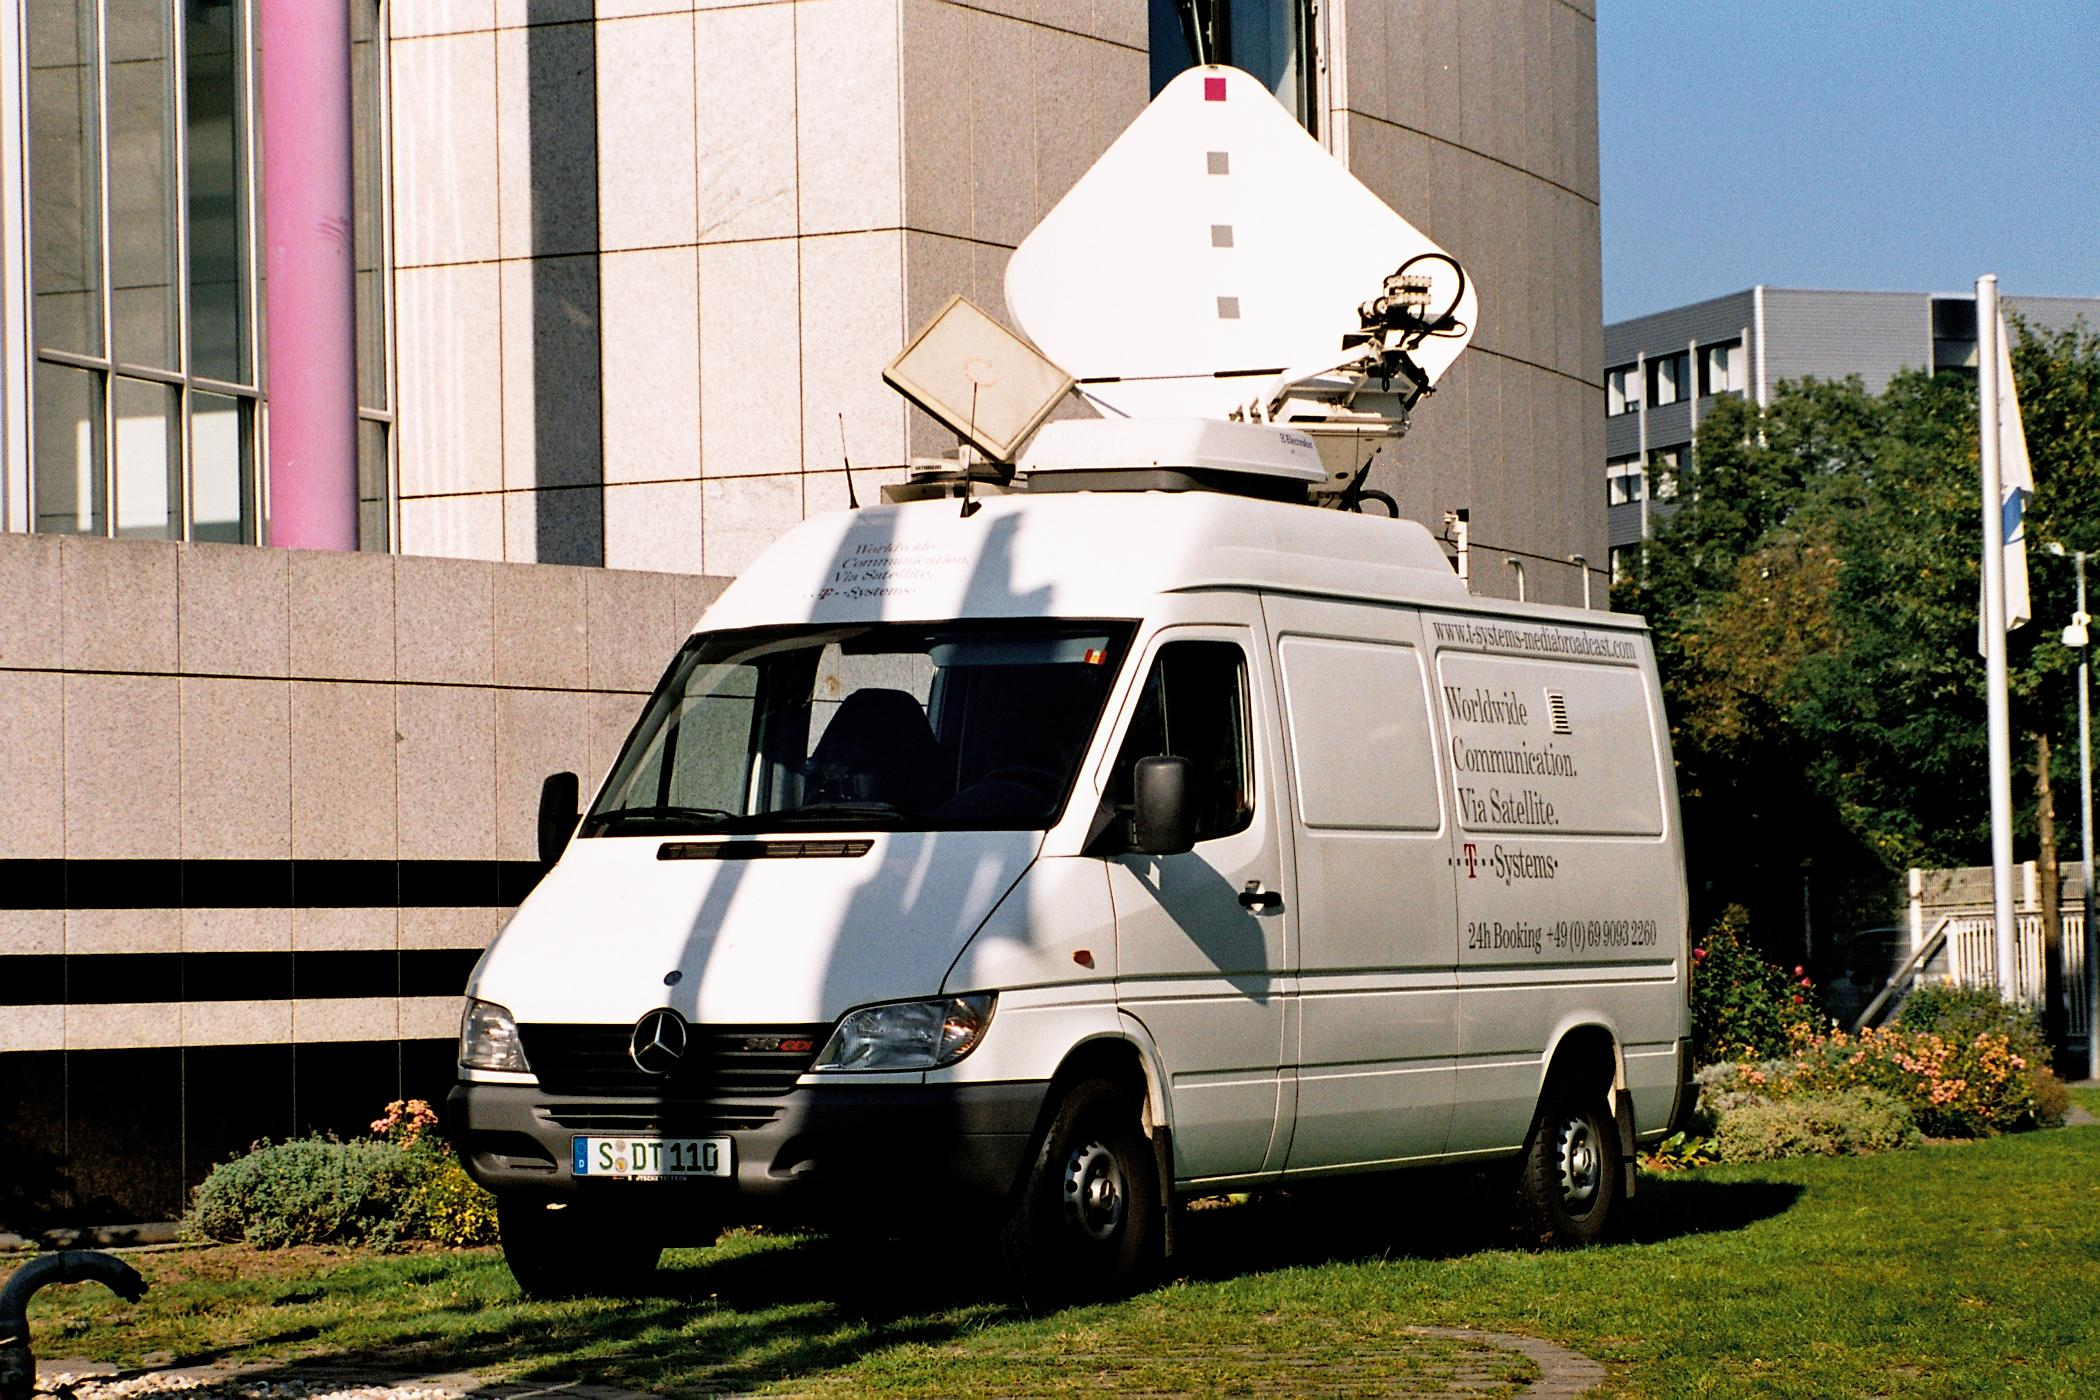 file t mobile satellite communication van jpg file t mobile satellite communication van jpg